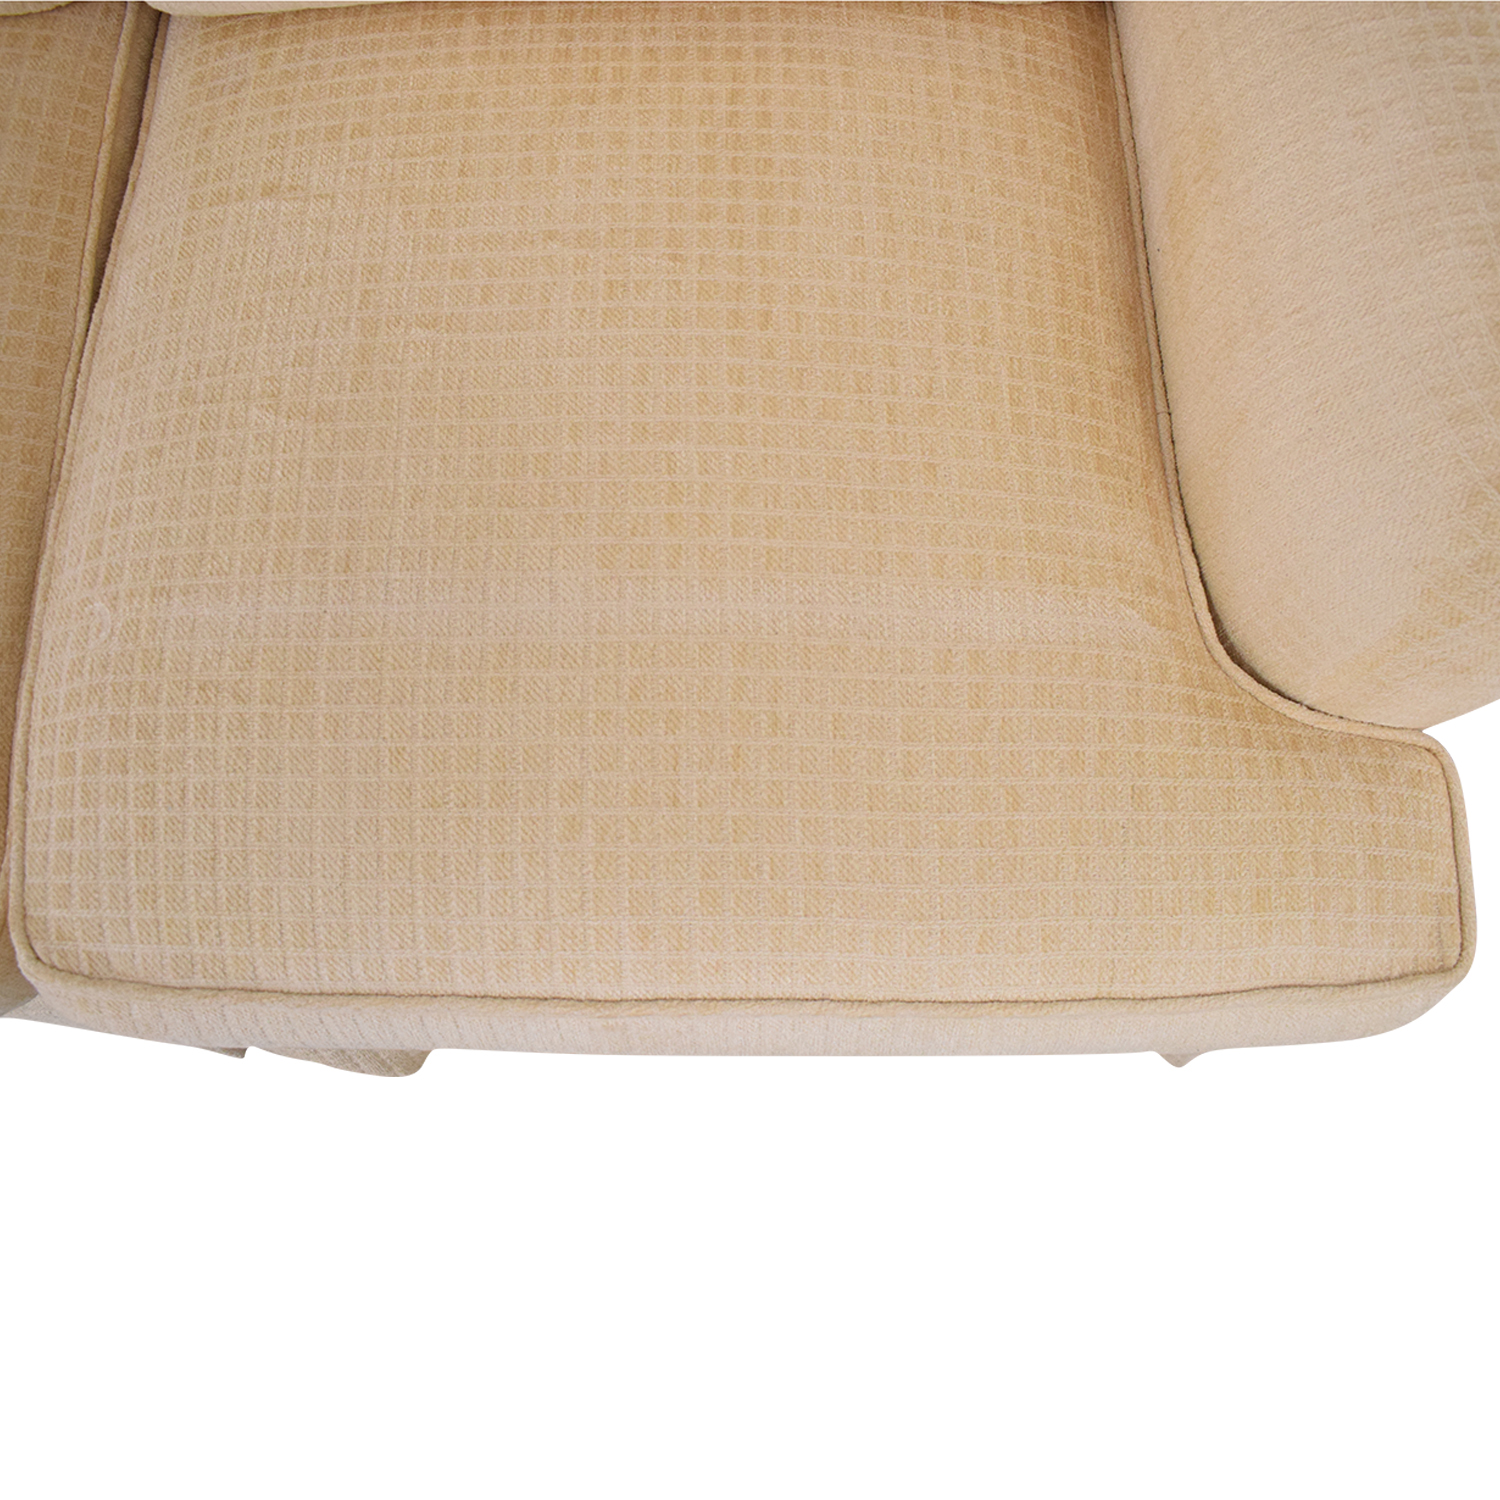 Mason-Art Mason-Art Upholstered Loveseat dimensions